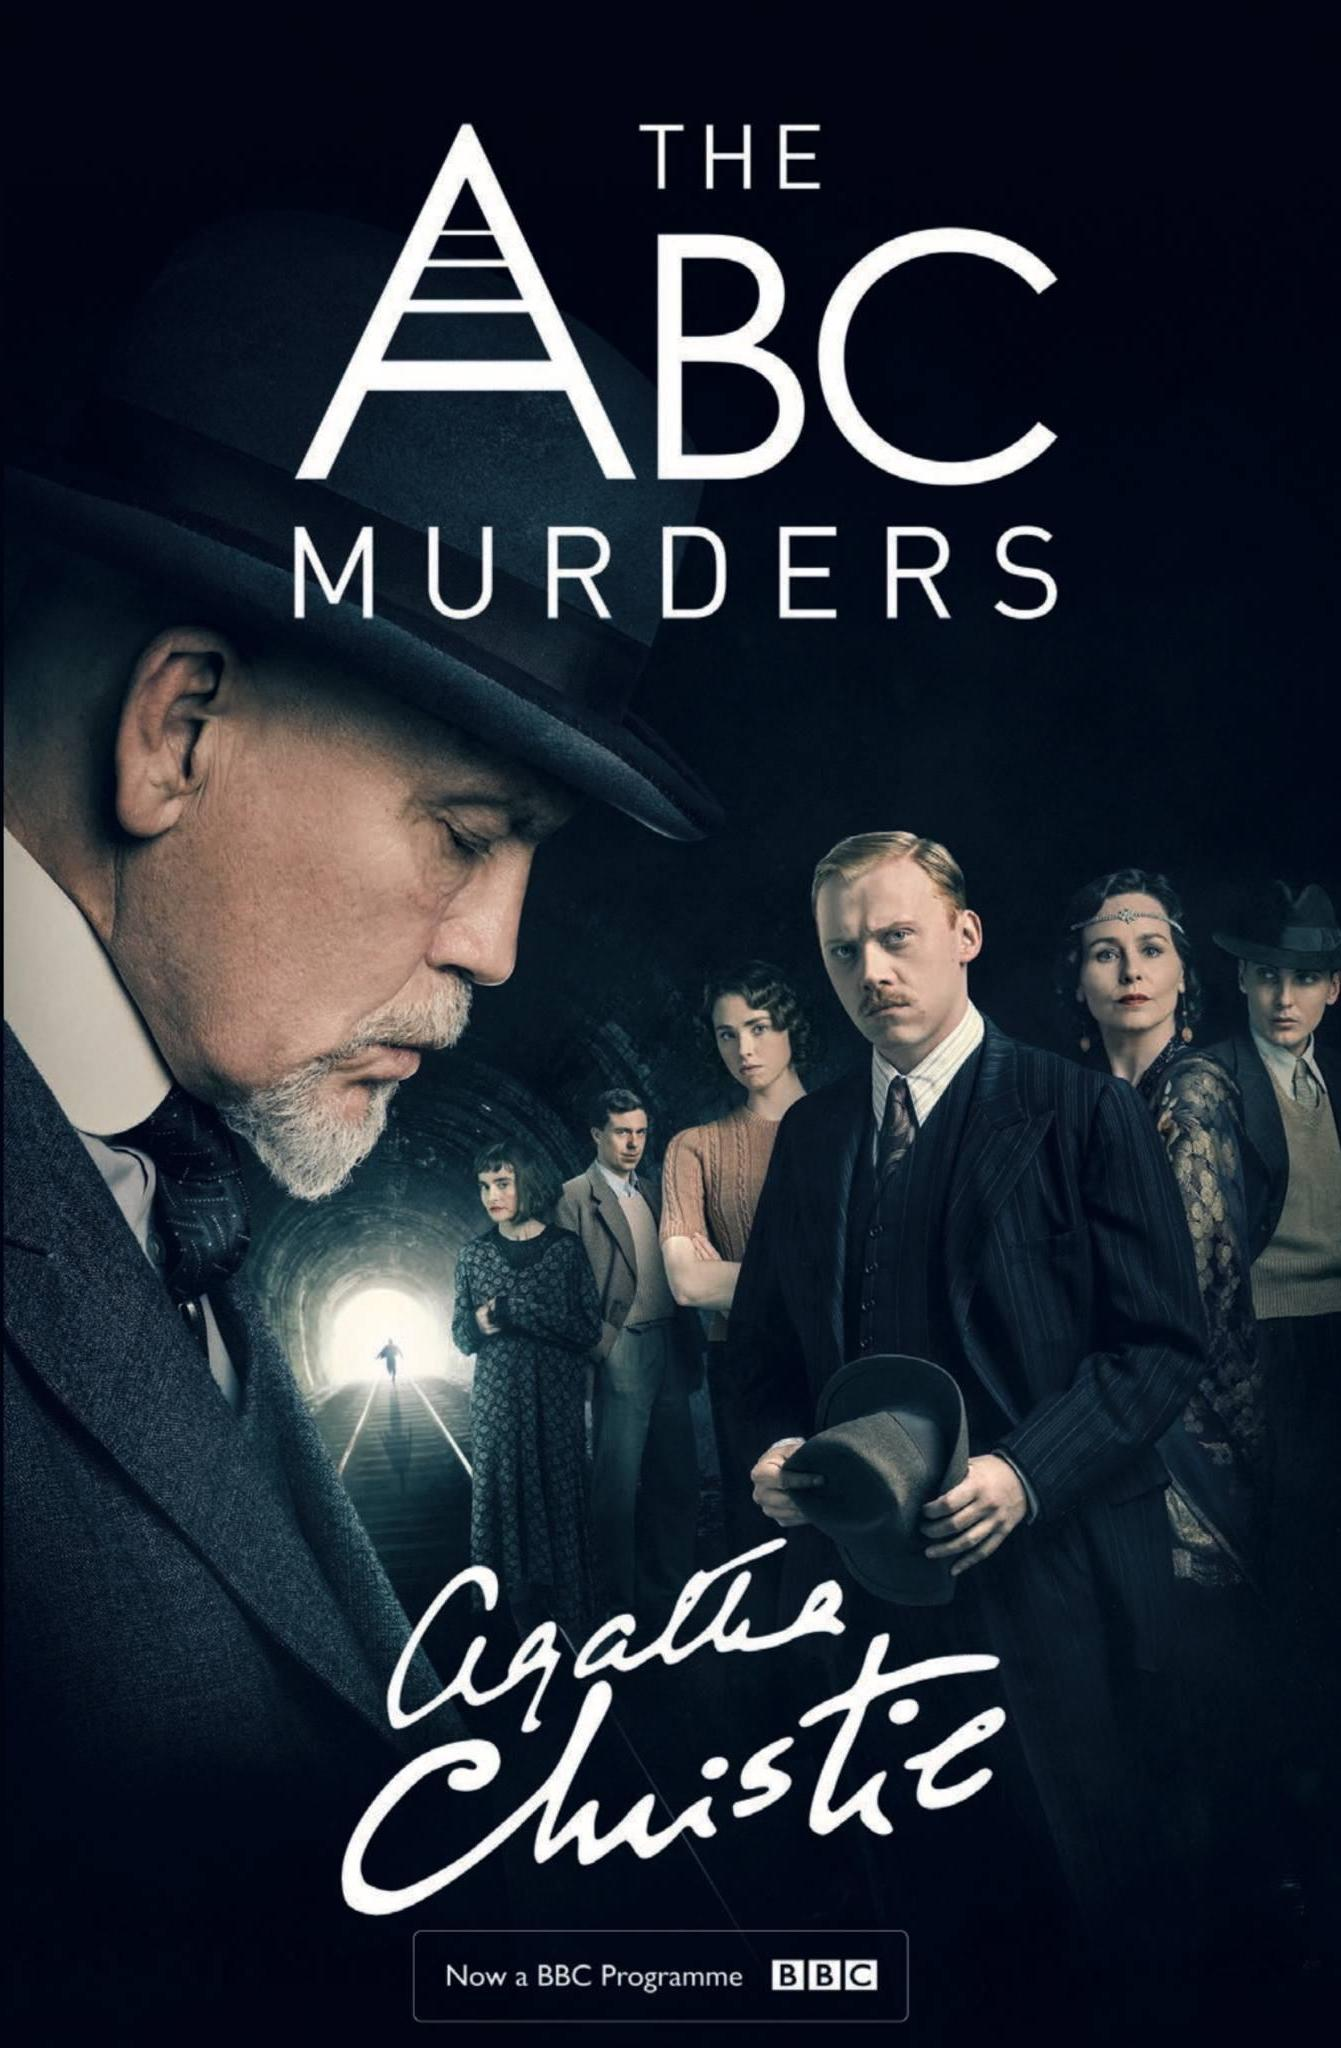 The ABC Murders S01 E02 Cut